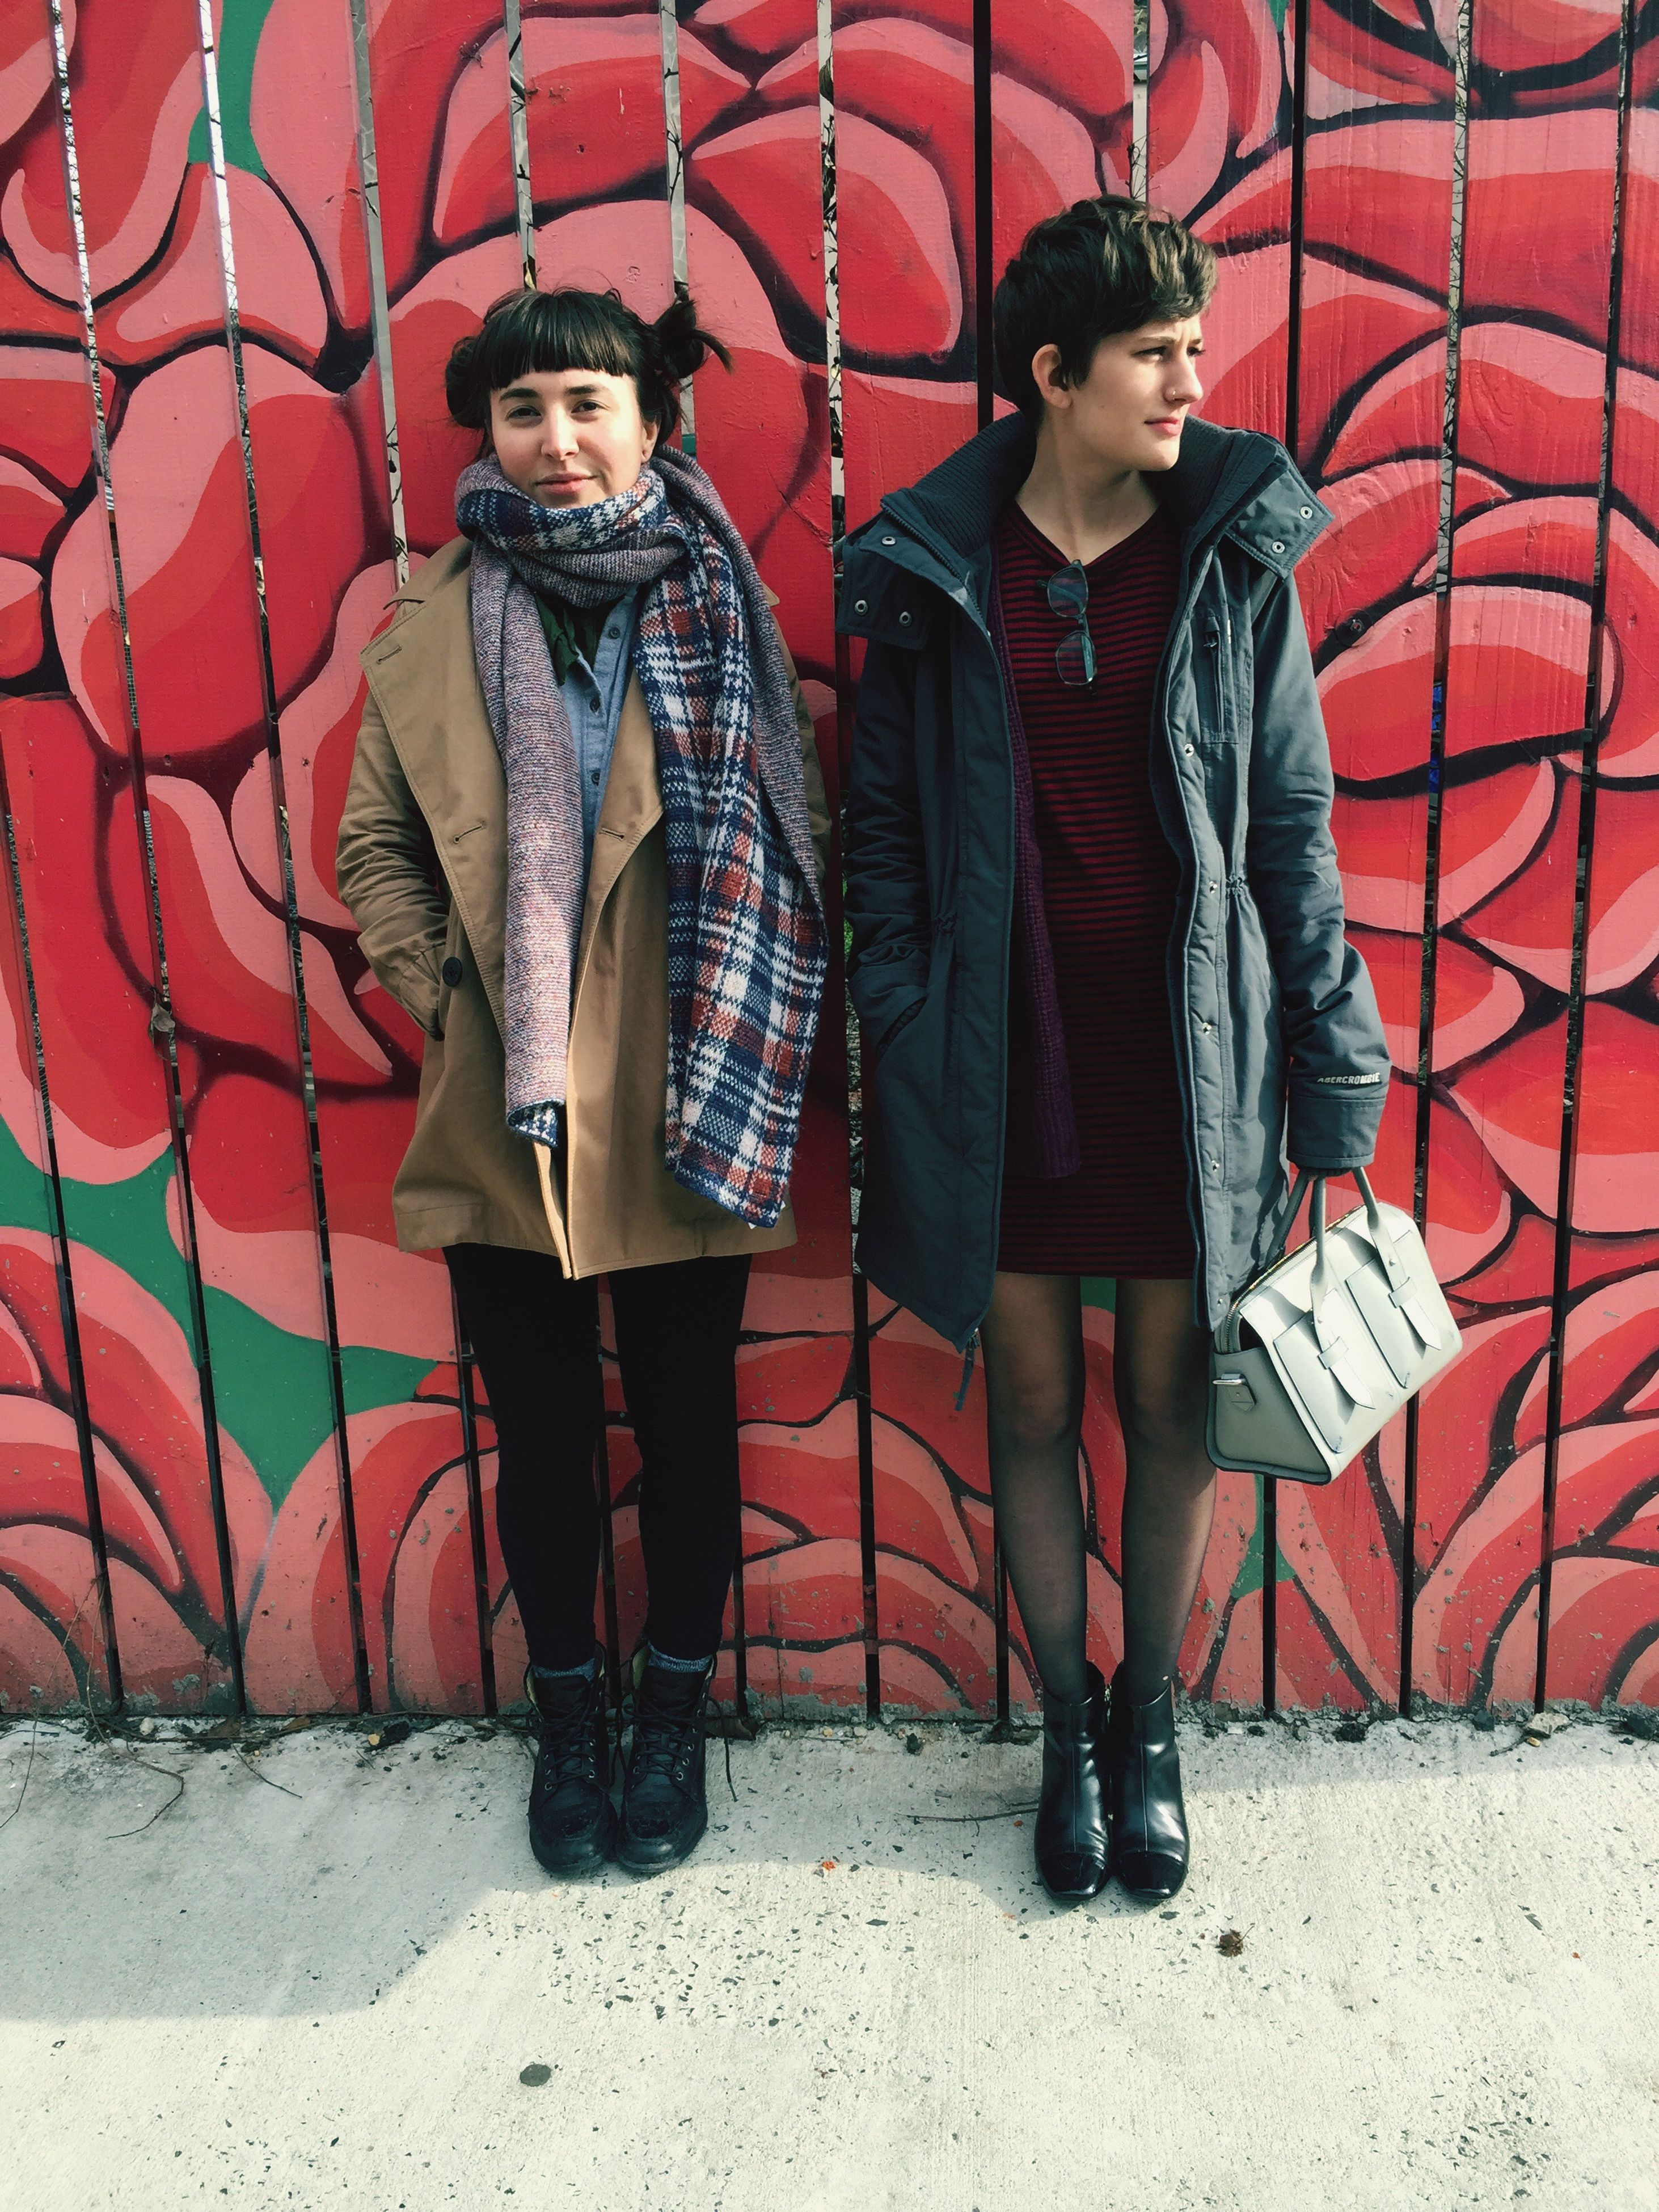 young adult, lifestyles, front view, casual clothing, looking at camera, portrait, standing, young women, leisure activity, person, graffiti, red, full length, wall - building feature, smiling, built structure, jacket, traditional clothing